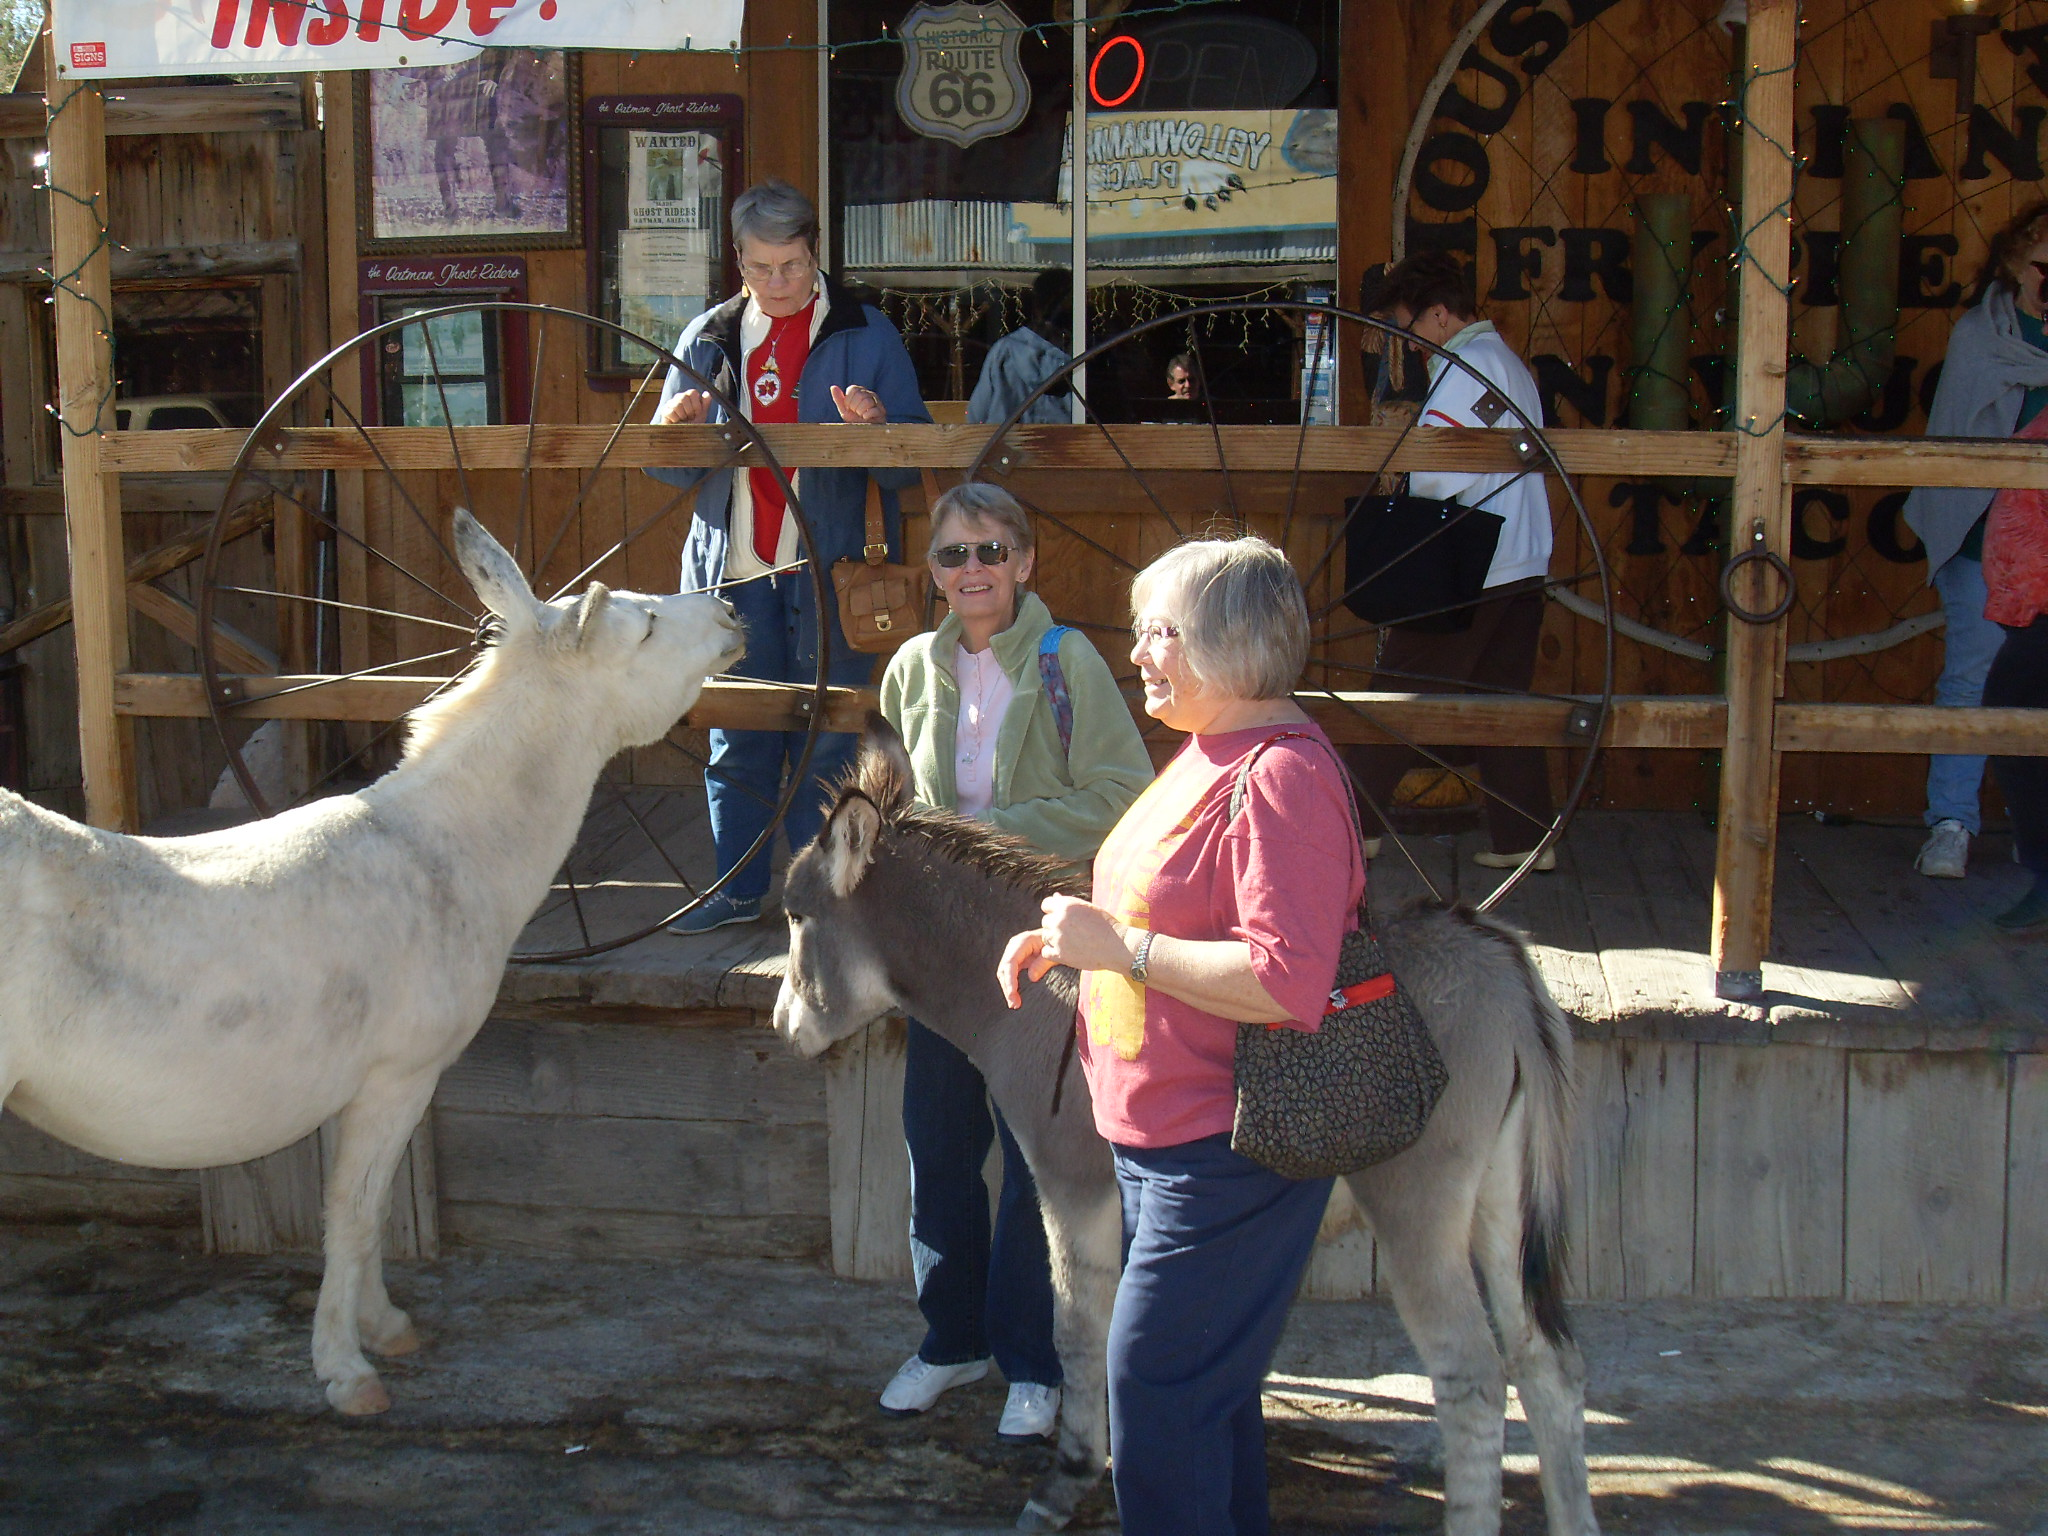 The burros attract a lot of attention in Oatman.